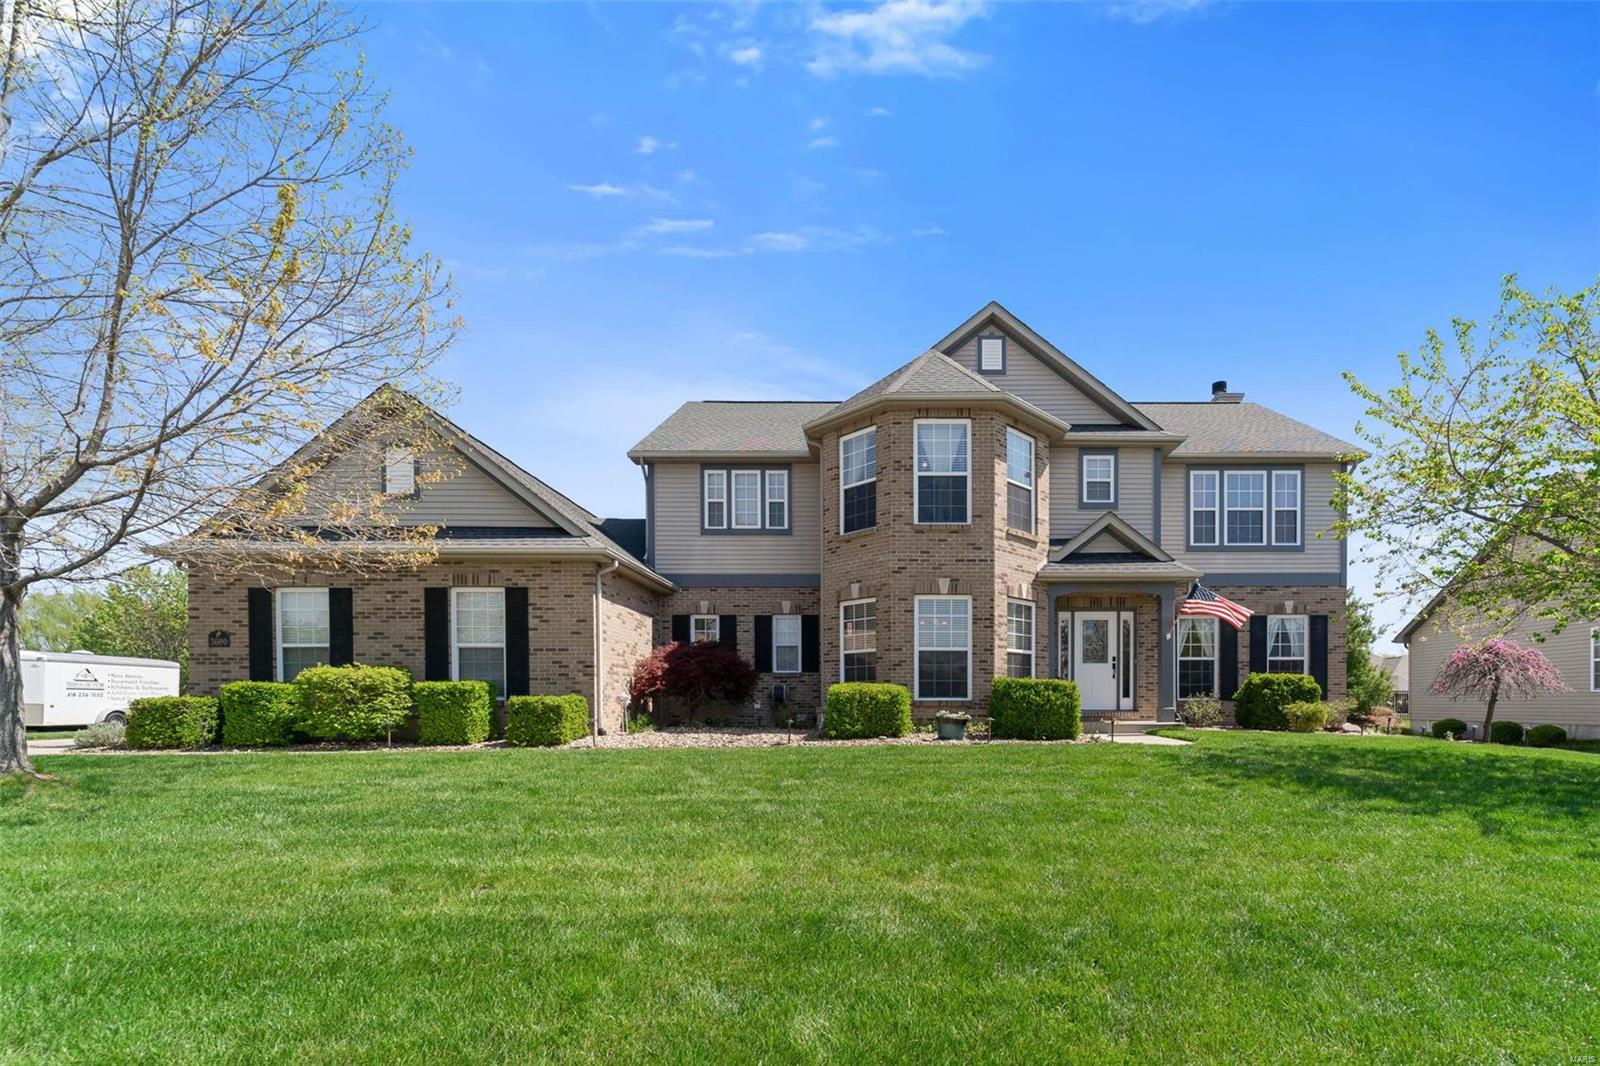 3600 Wood Duck Drive Property Photo - Swansea, IL real estate listing